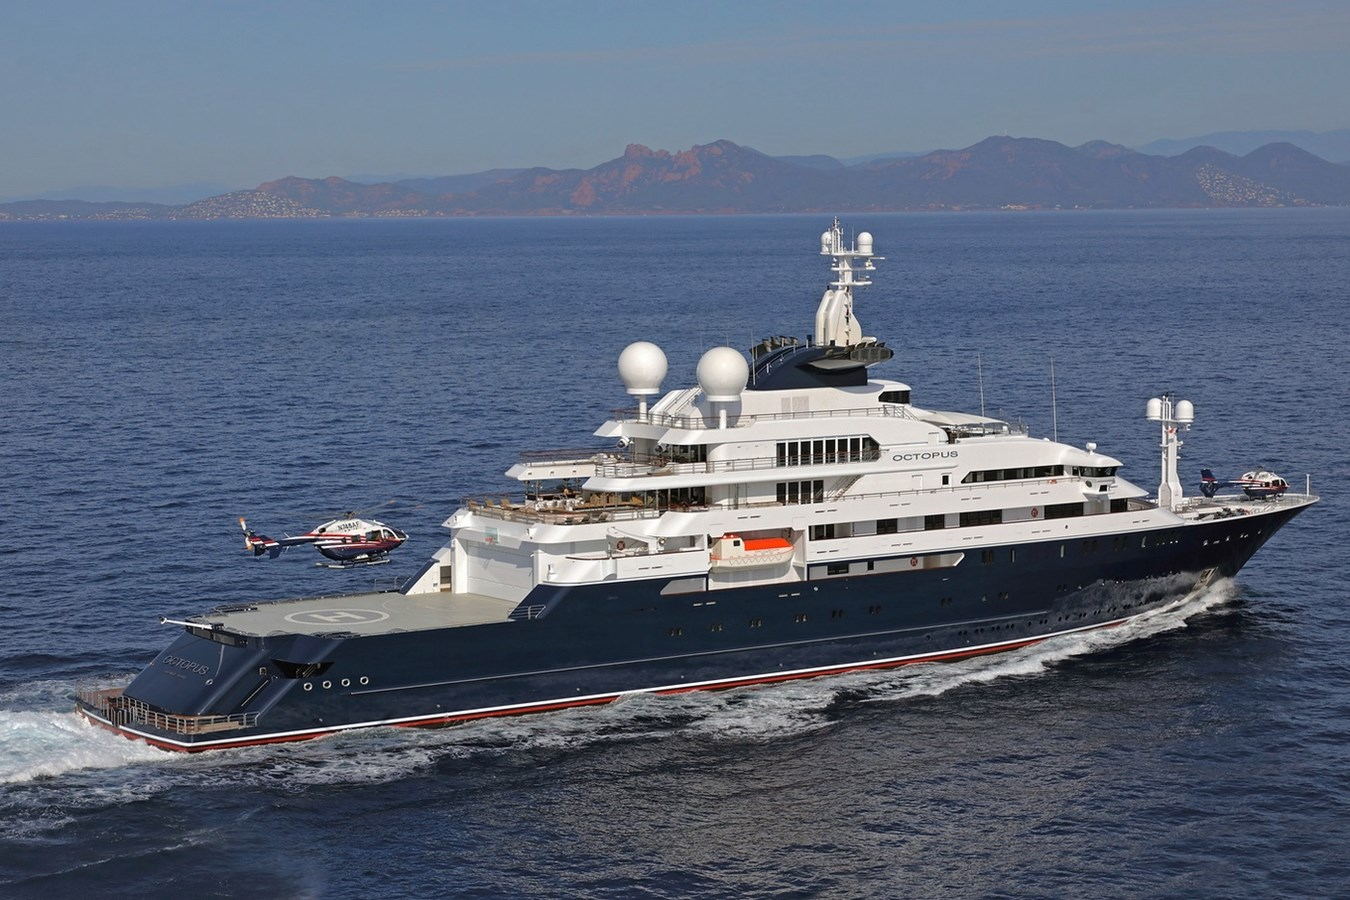 OCTOPUS_00006307_vb1574512 2003 LURSSEN Twin Screw Displacement Yacht Motor Yacht 2817182